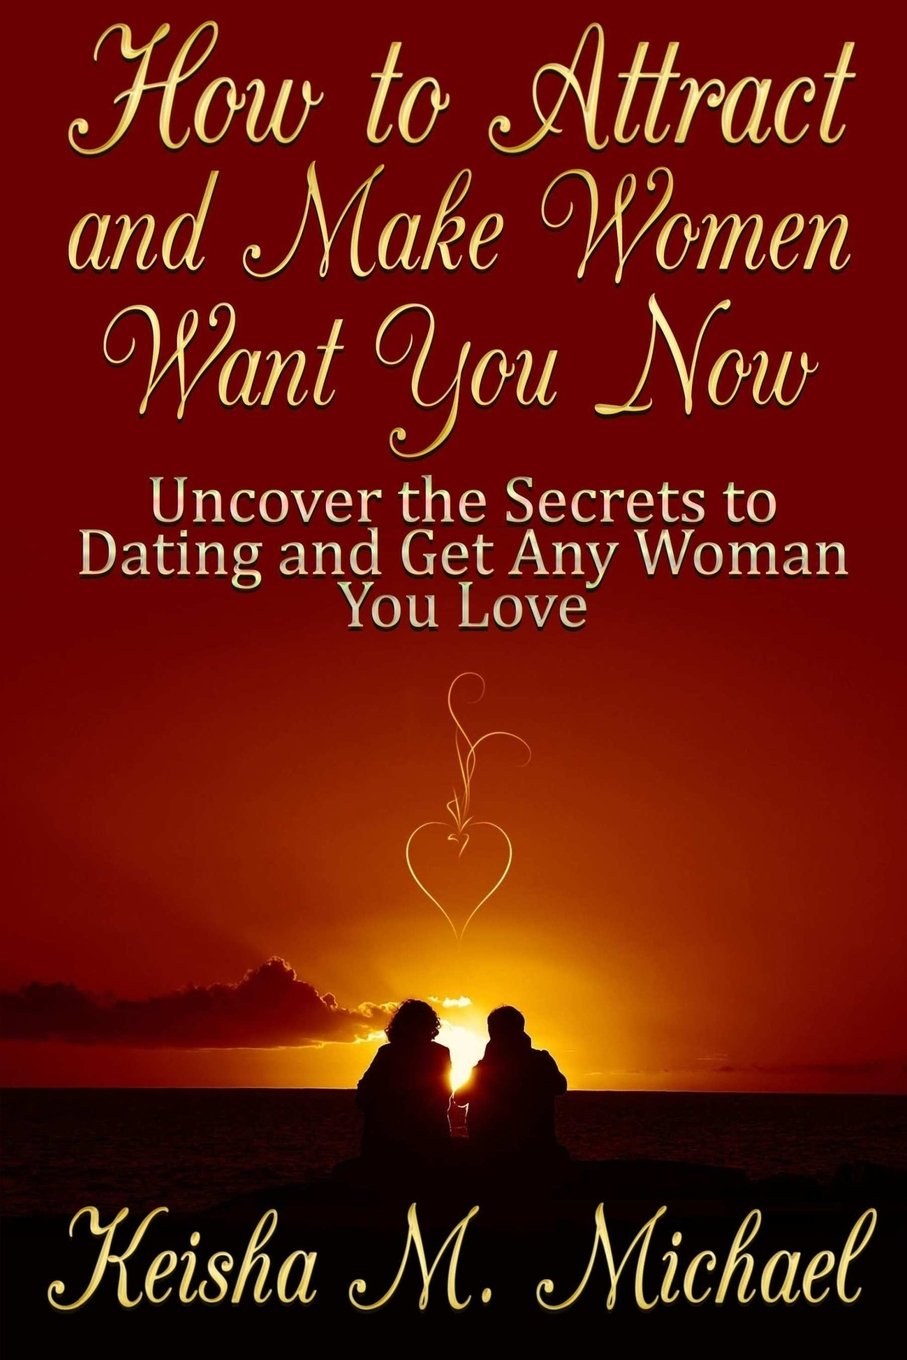 How to Attract and Make Women Want You Now: Uncover the